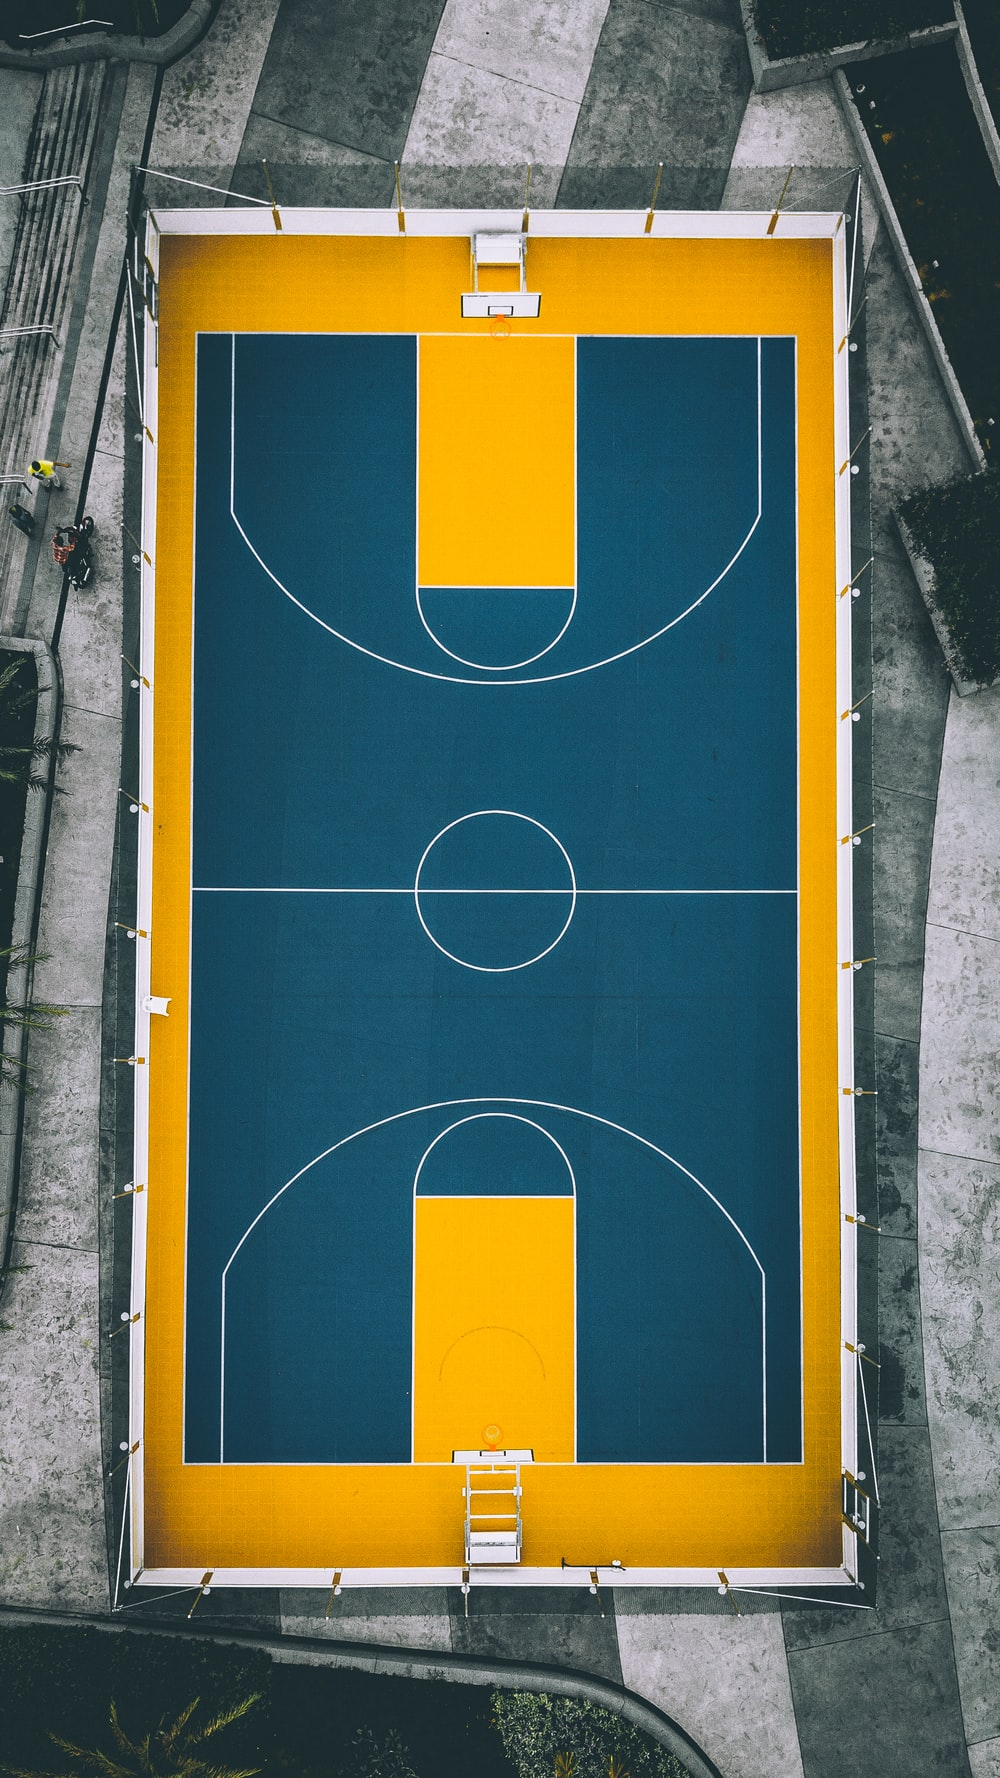 aerial view photography of yellow and blue basketball court